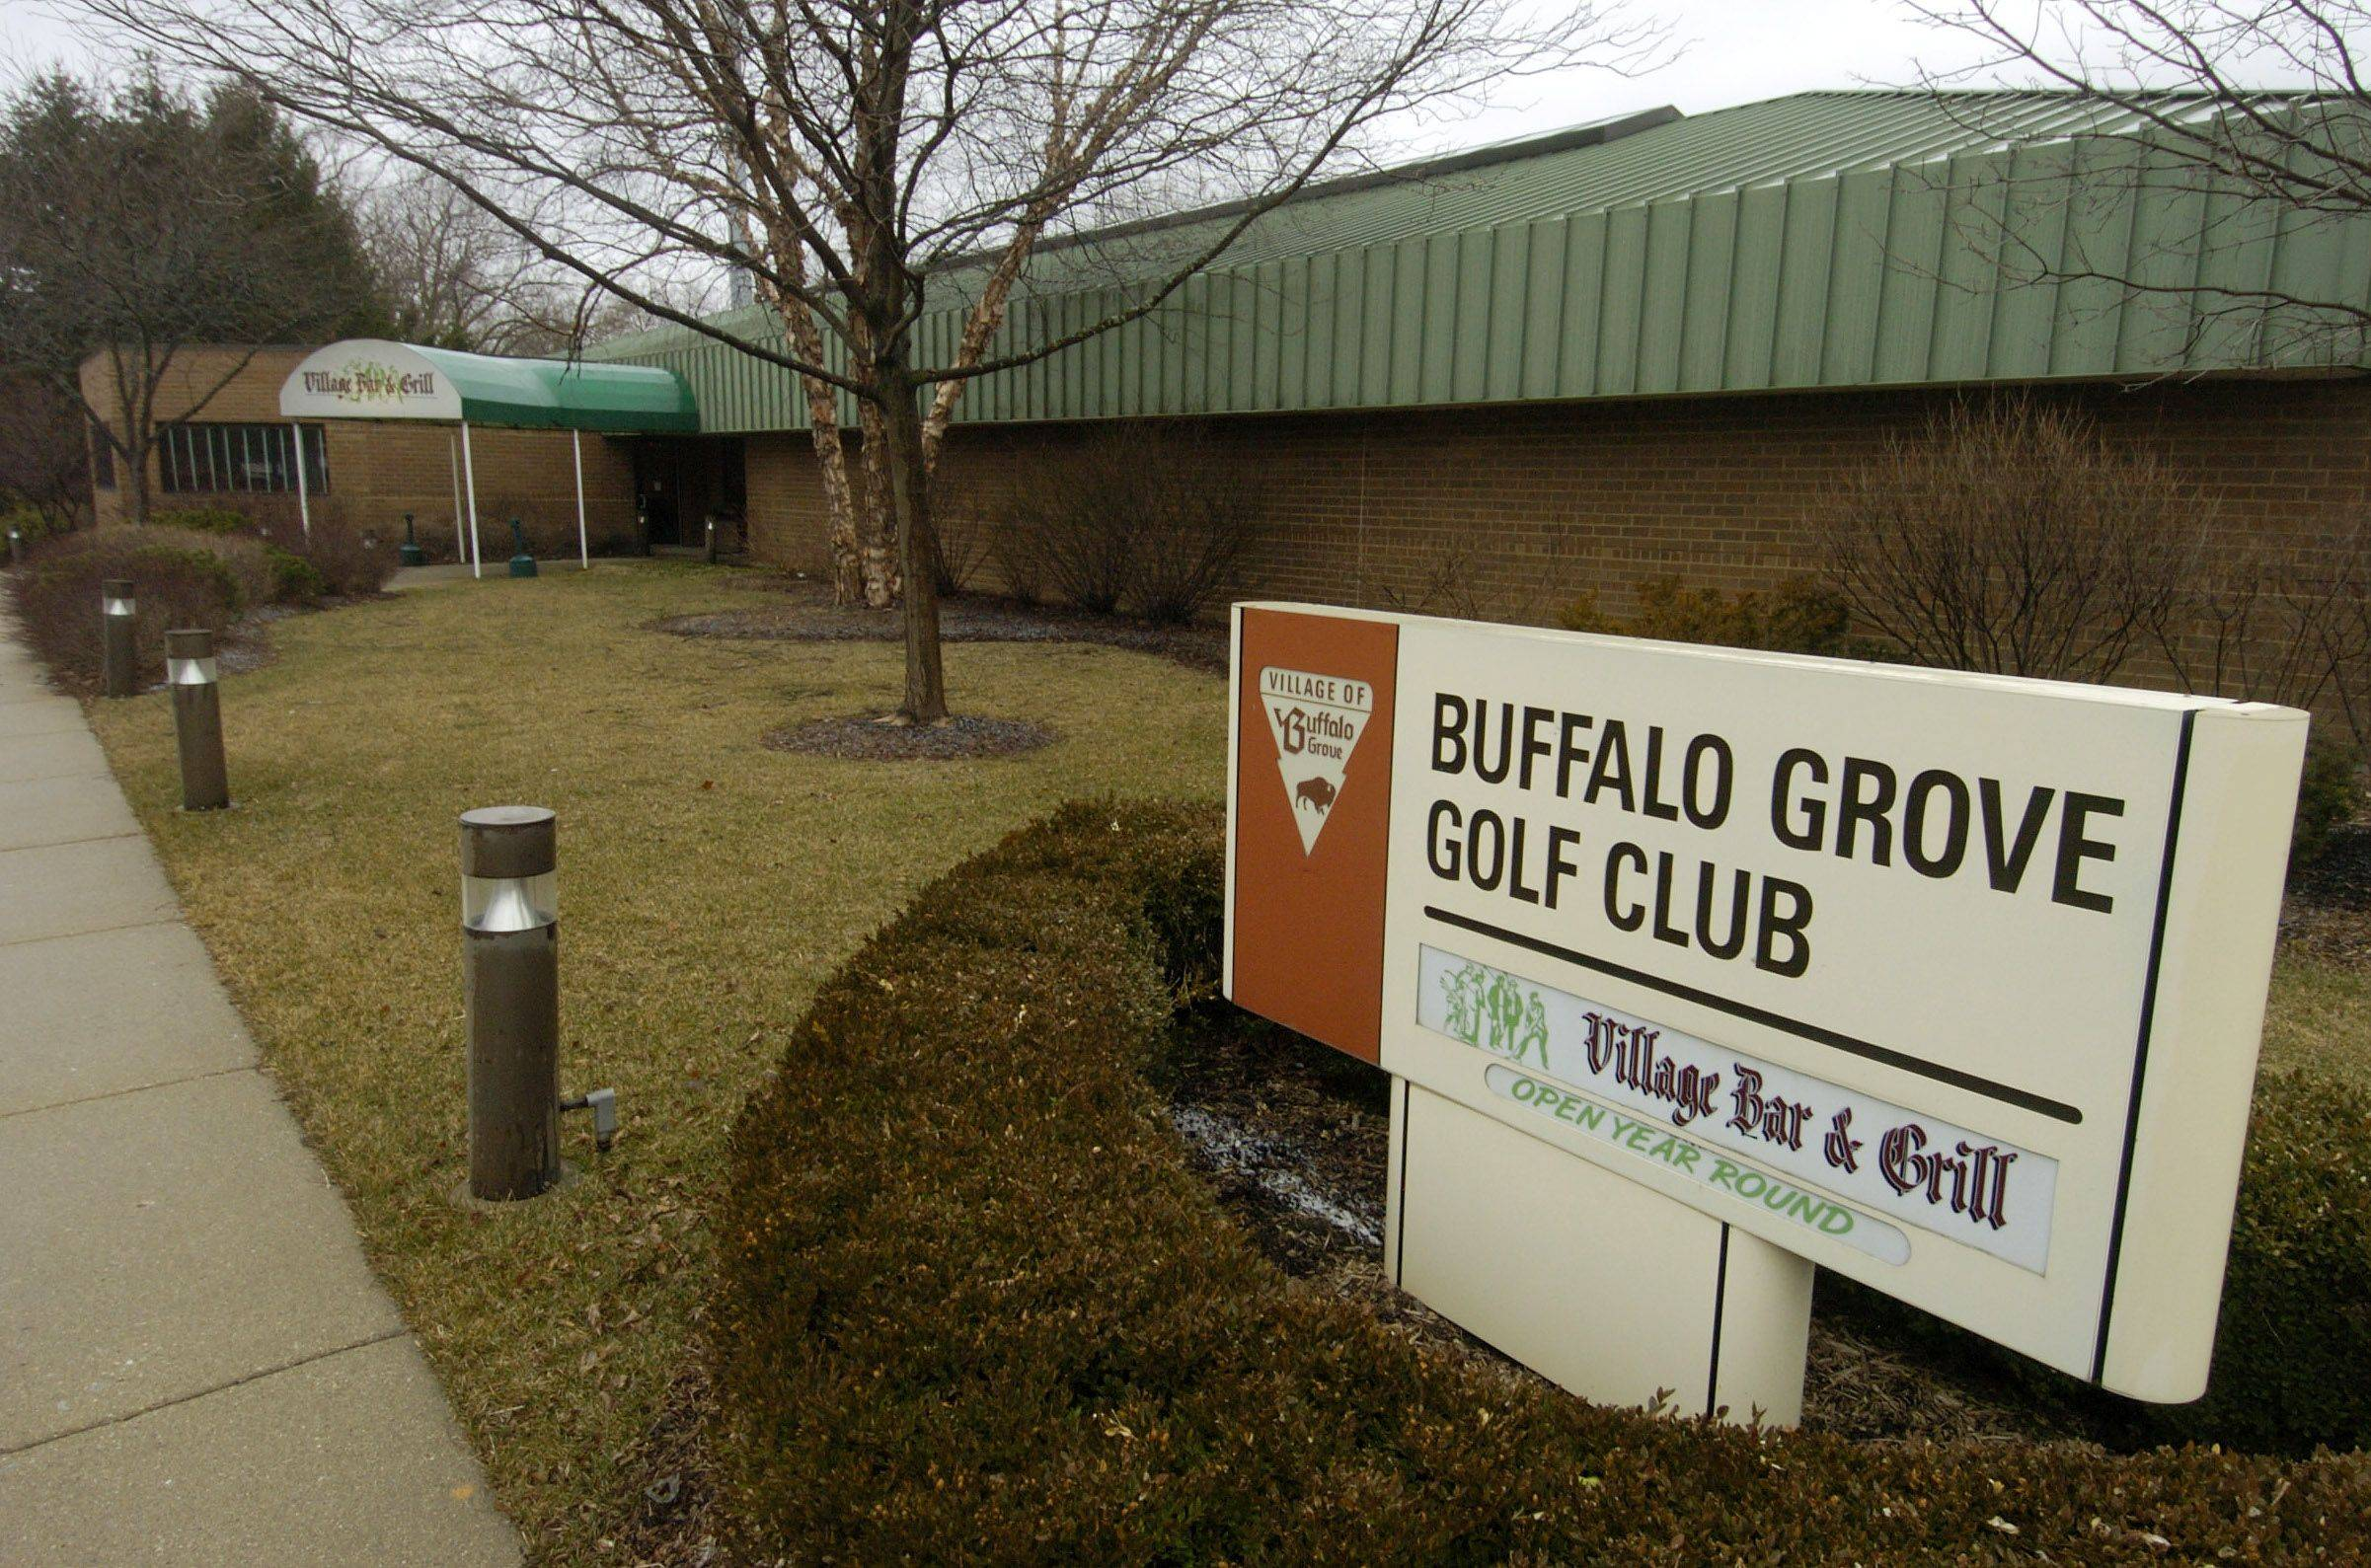 Buffalo Grove officials are weighing a proposal to allow an off-track betting parlor on the village's campus at Raupp Boulevard and Lake-Cook Road. The OTB would become part of the Village Bar & Grill. The campus also includes village hall and the village's police station.